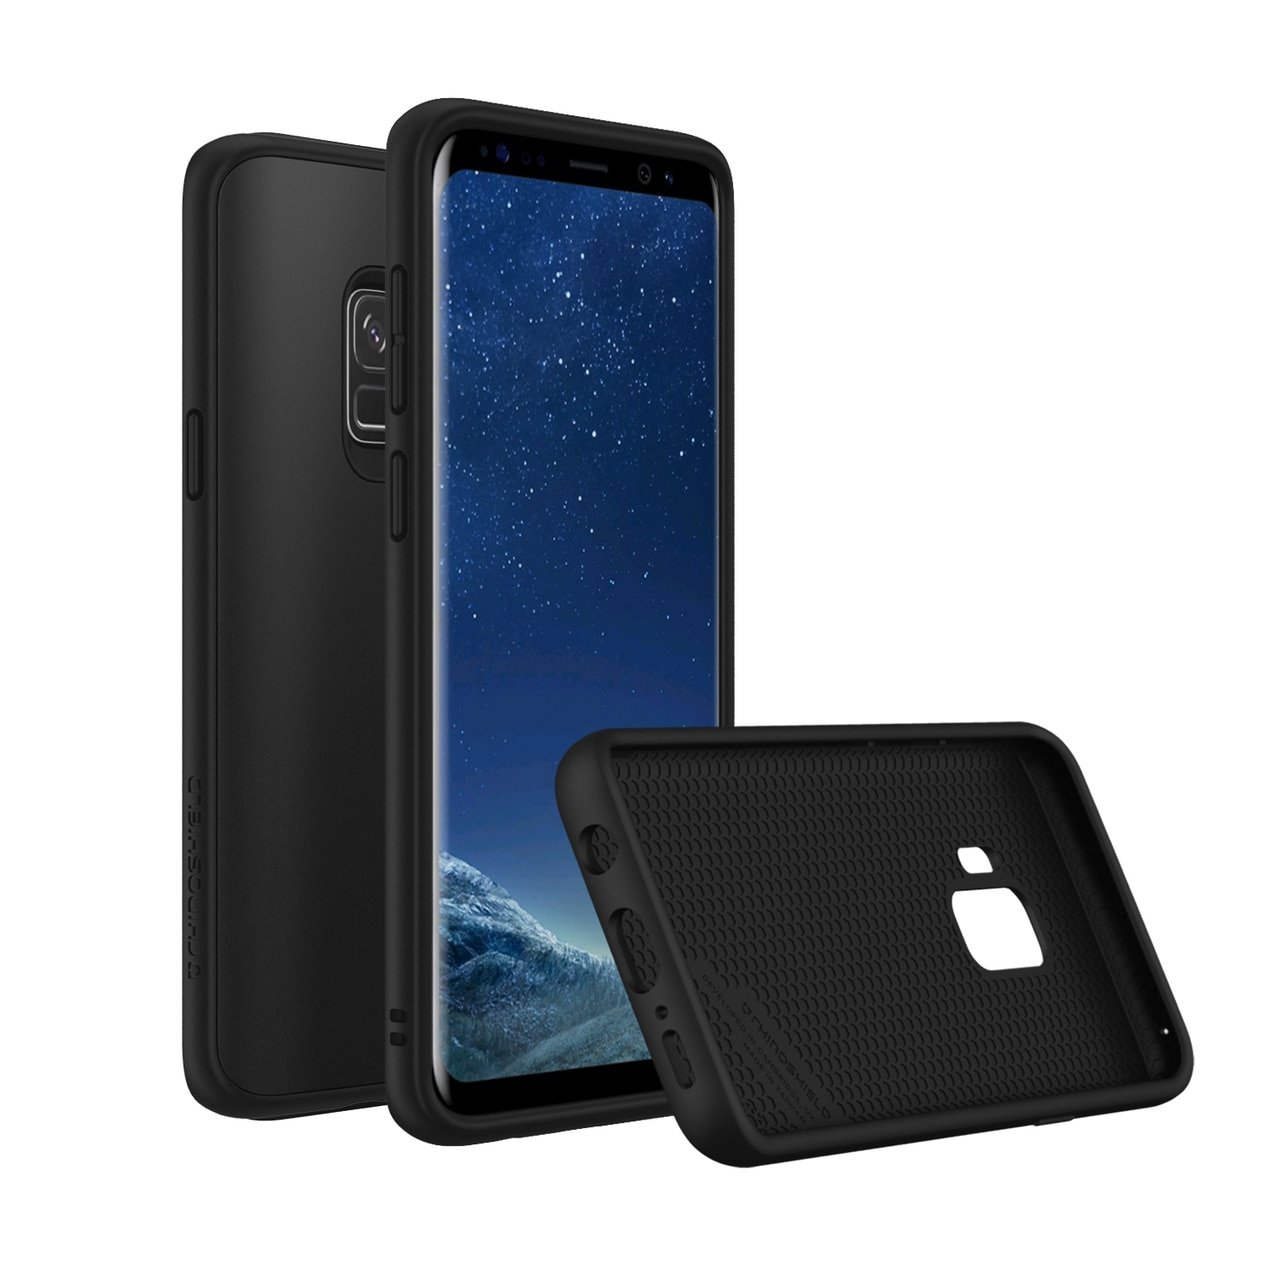 RhinoShield Samsung Galaxy S9 SolidSuit Case - Classic Black